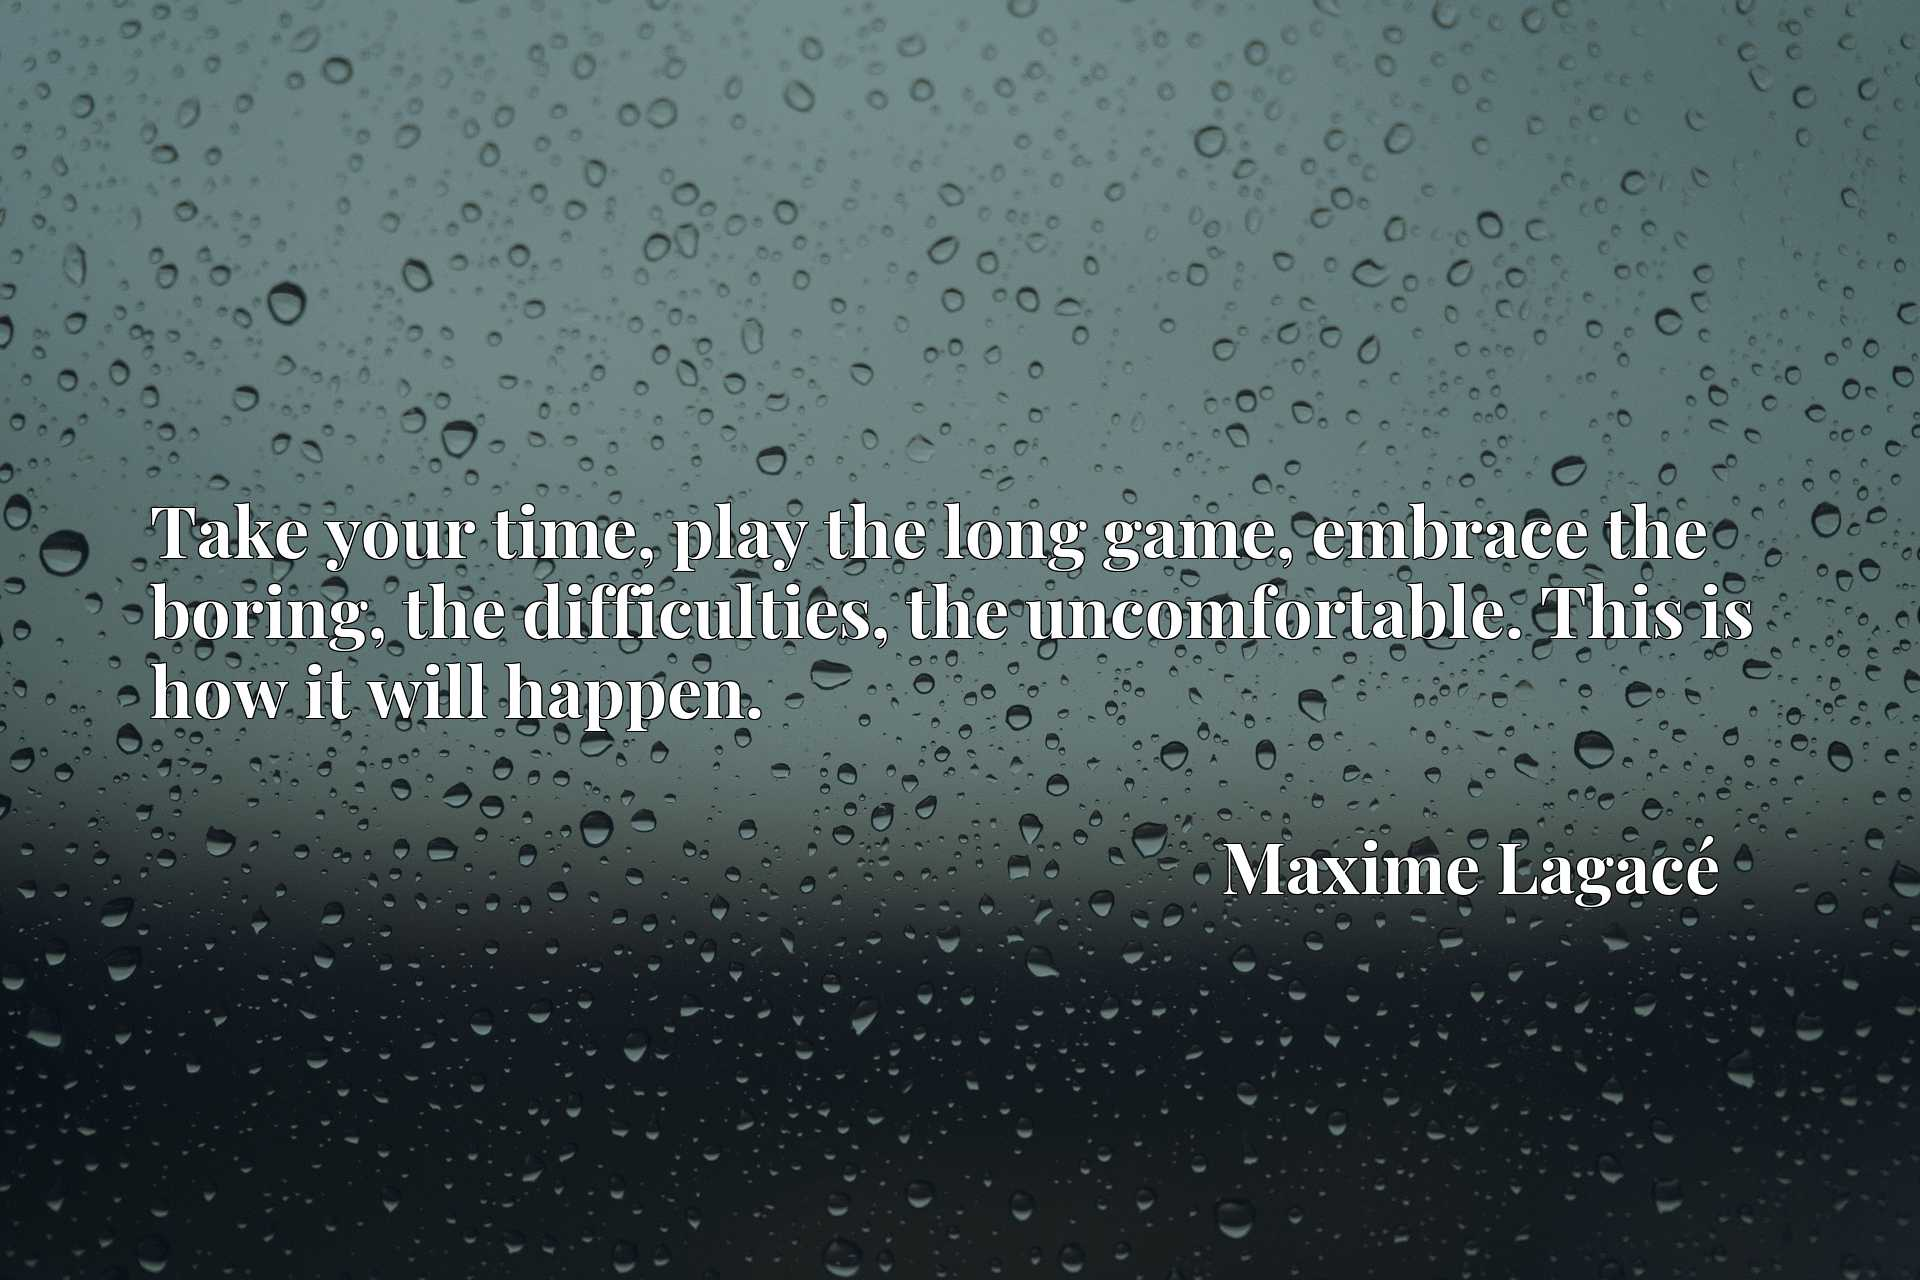 Quote Picture :Take your time, play the long game, embrace the boring, the difficulties, the uncomfortable. This is how it will happen.